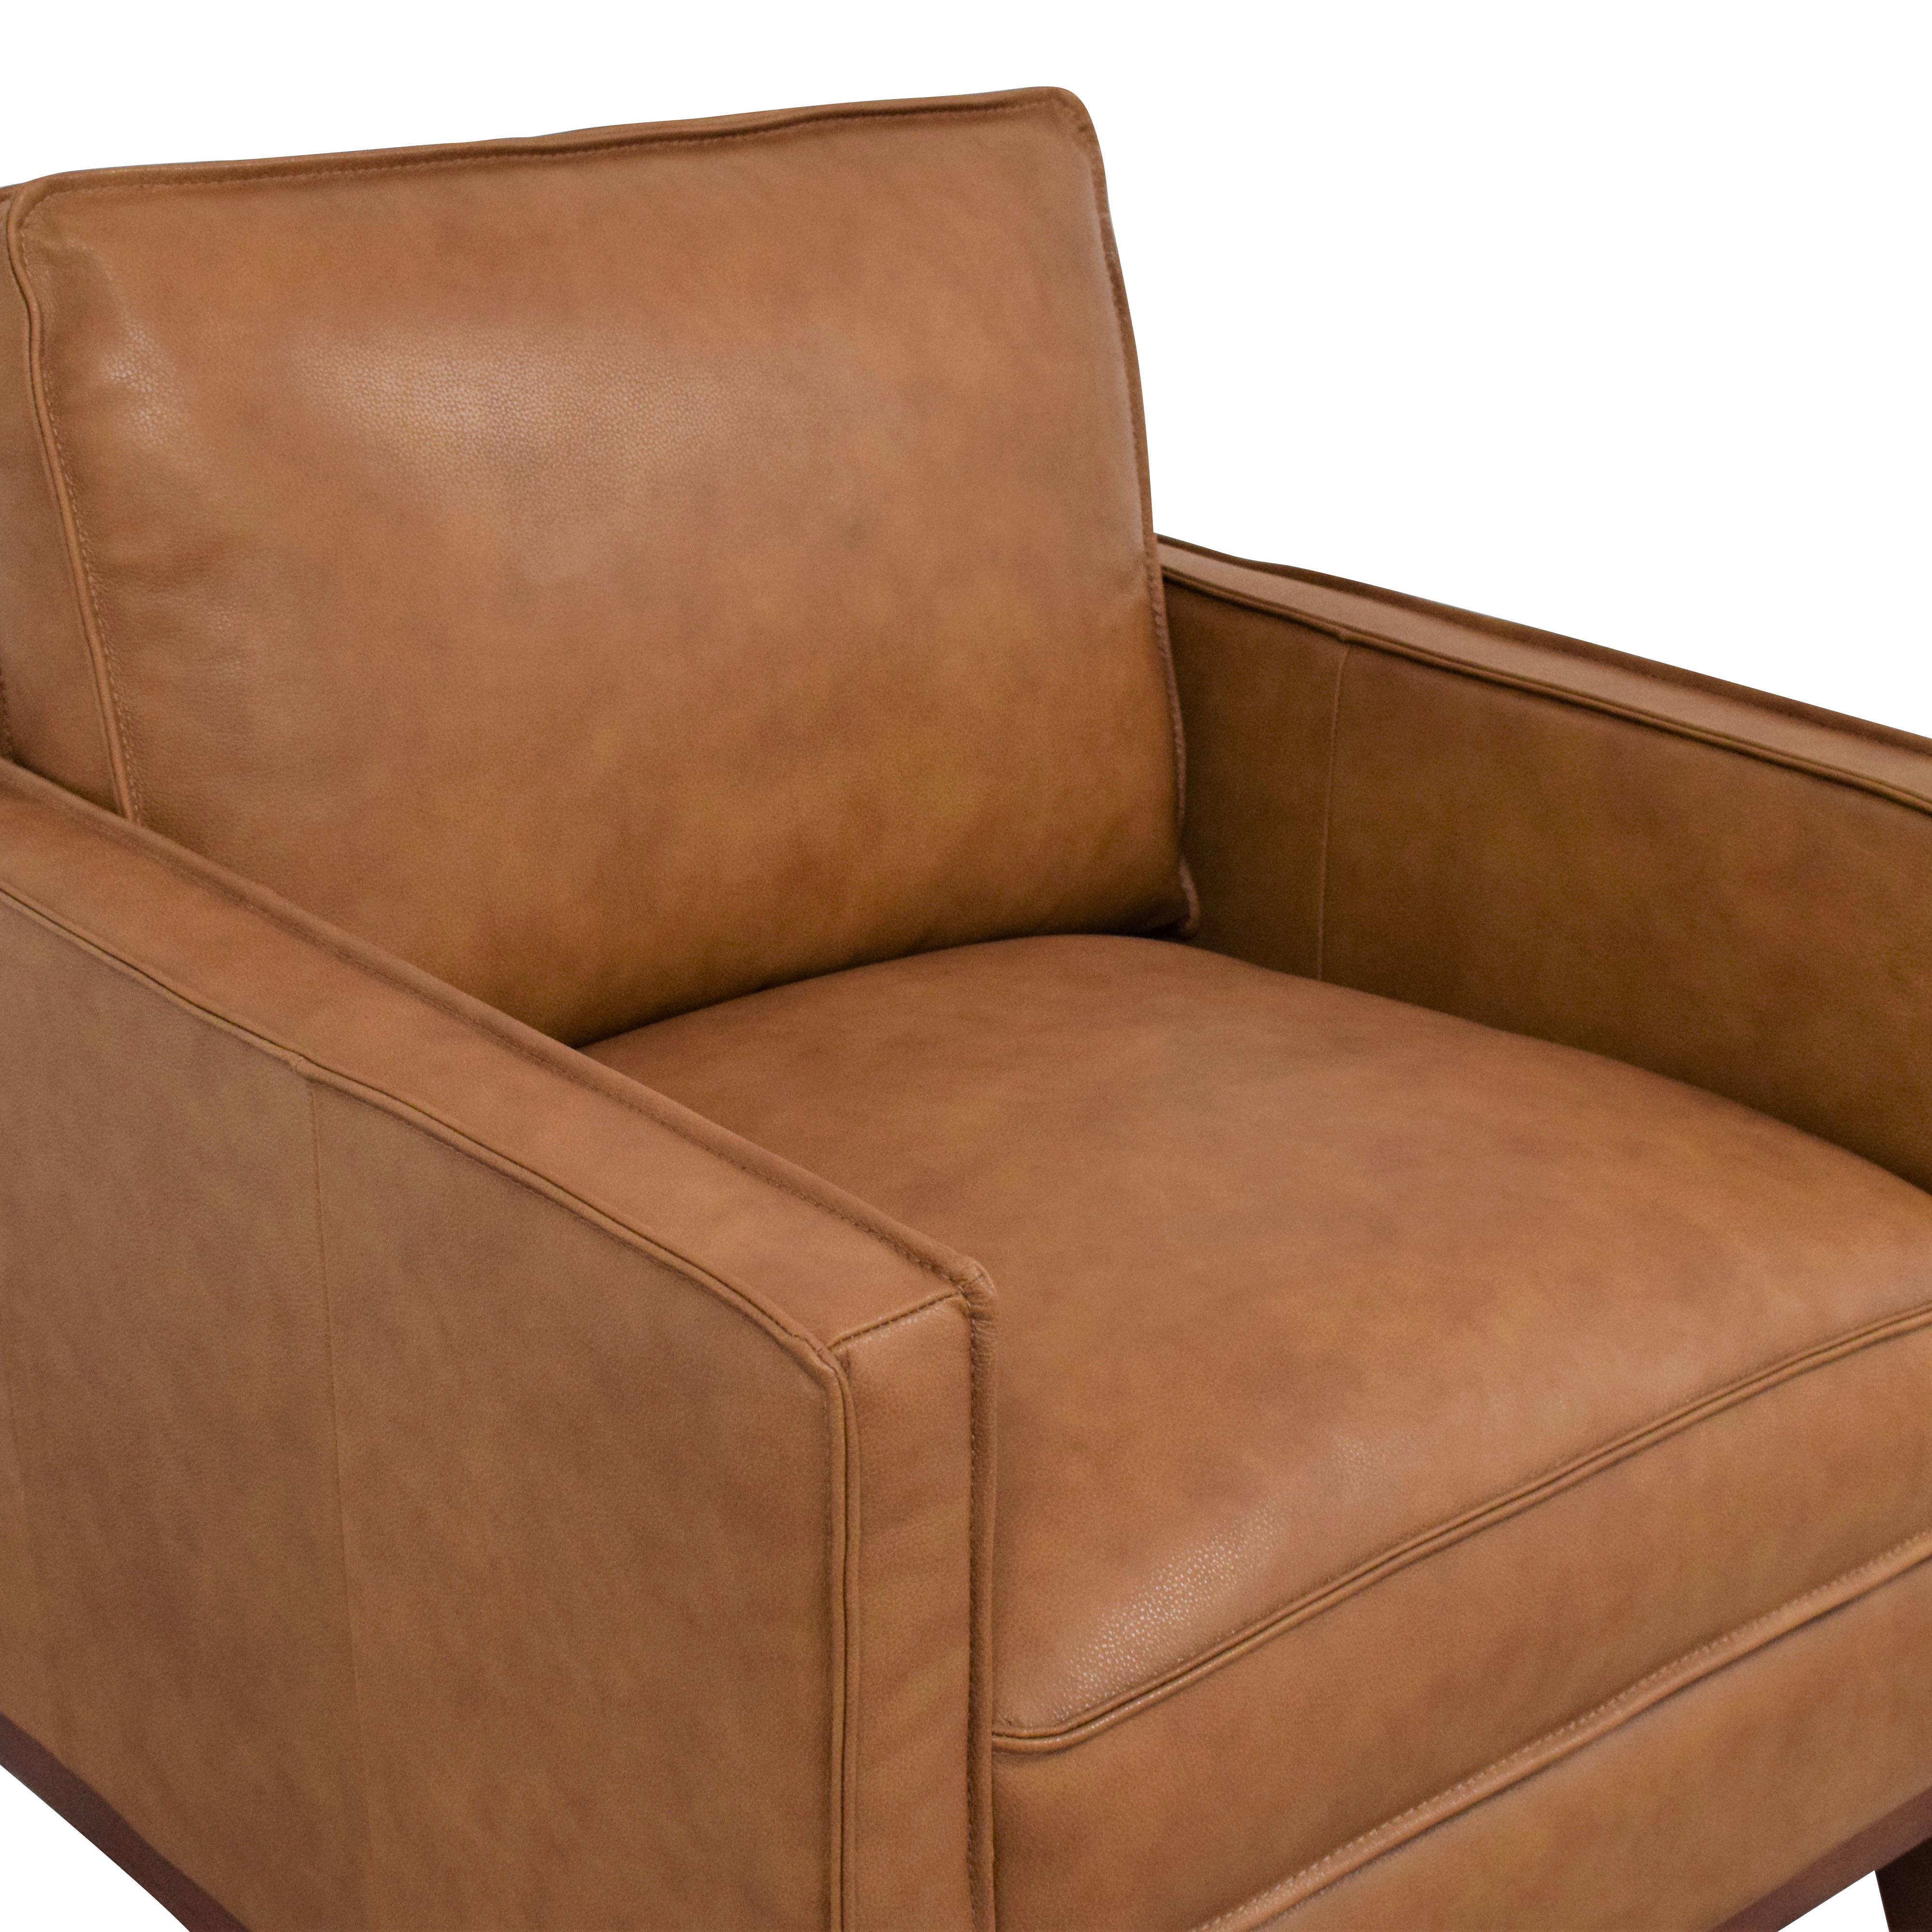 Leather Italia Leather Italia Newport Chair second hand